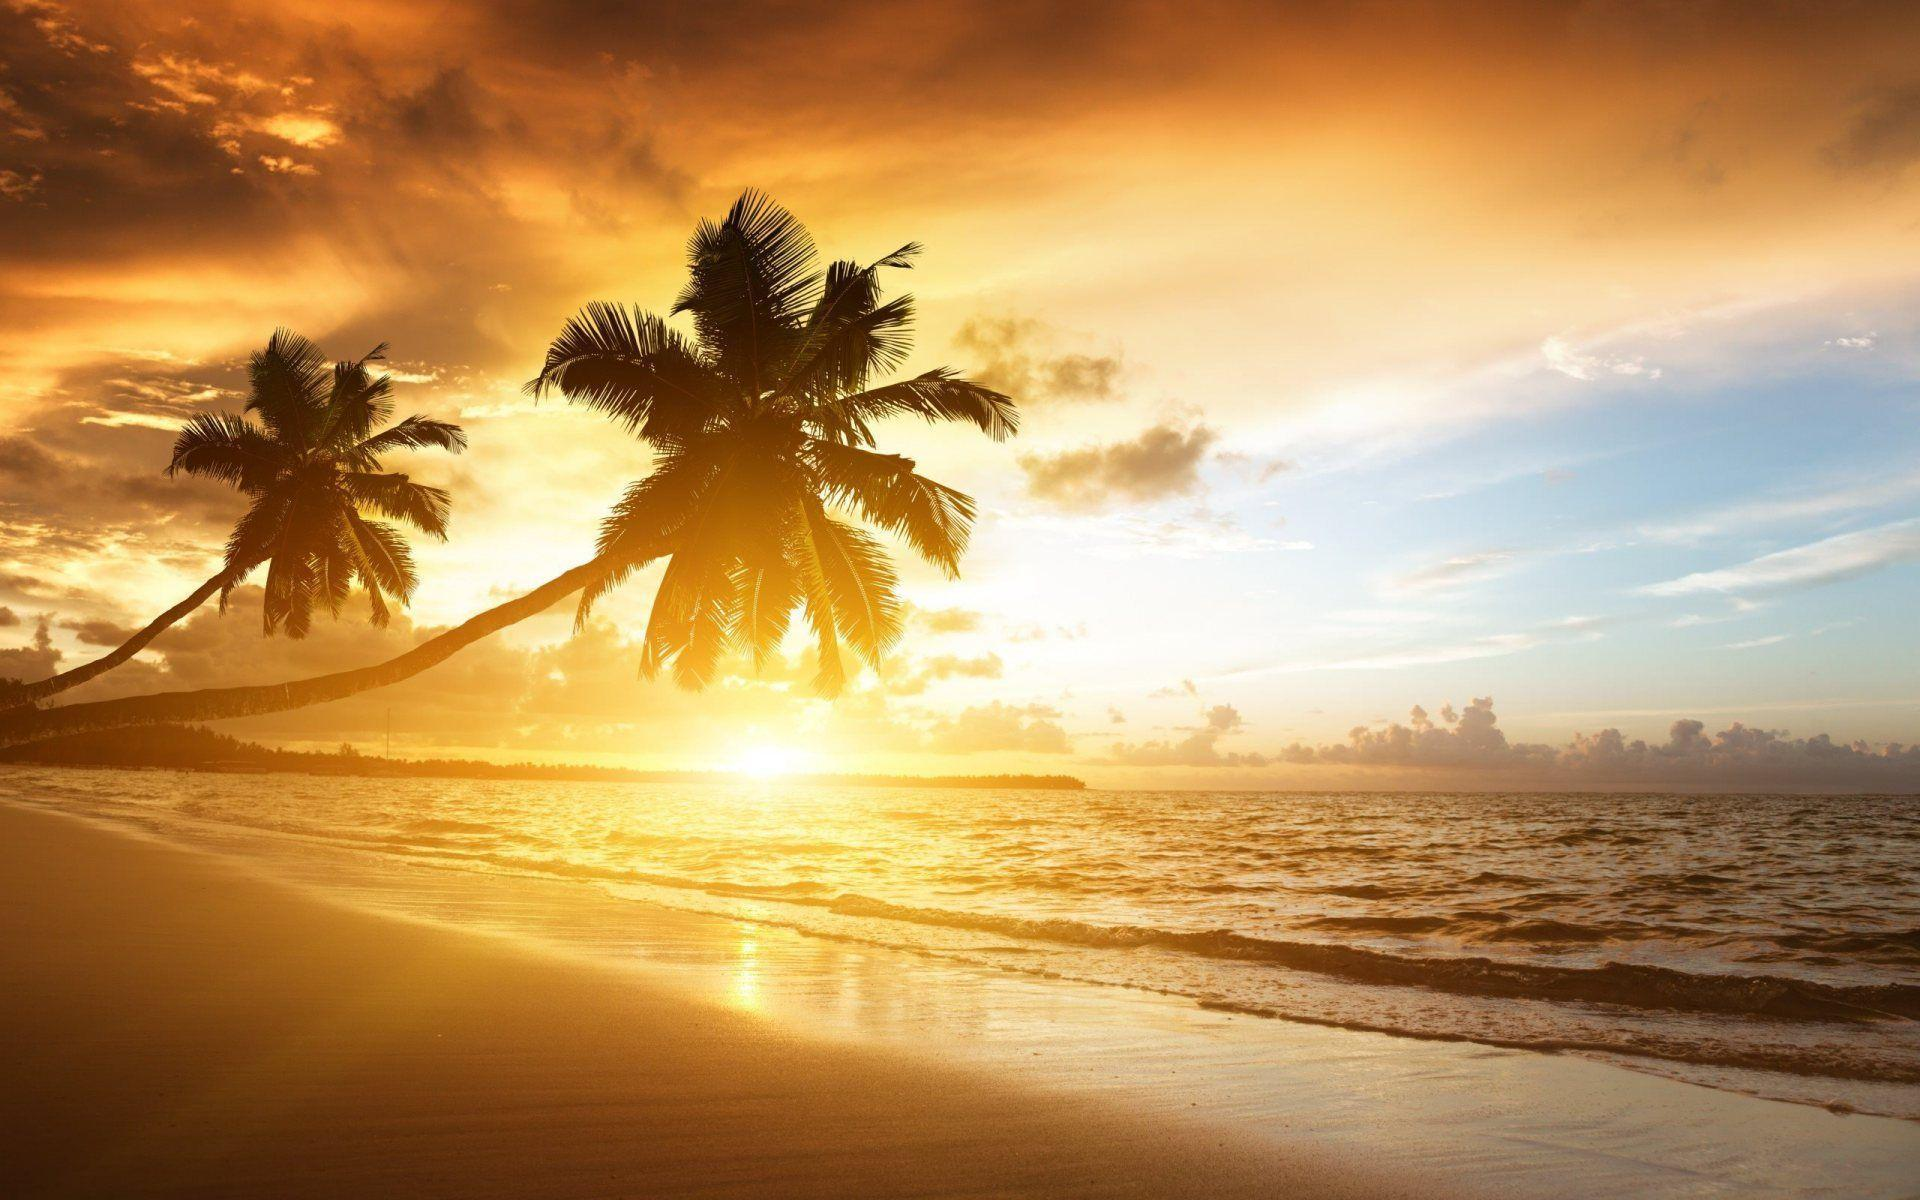 Beach Sunset Background Wallpaper 301 Full HD Wallpaper Desktop ...